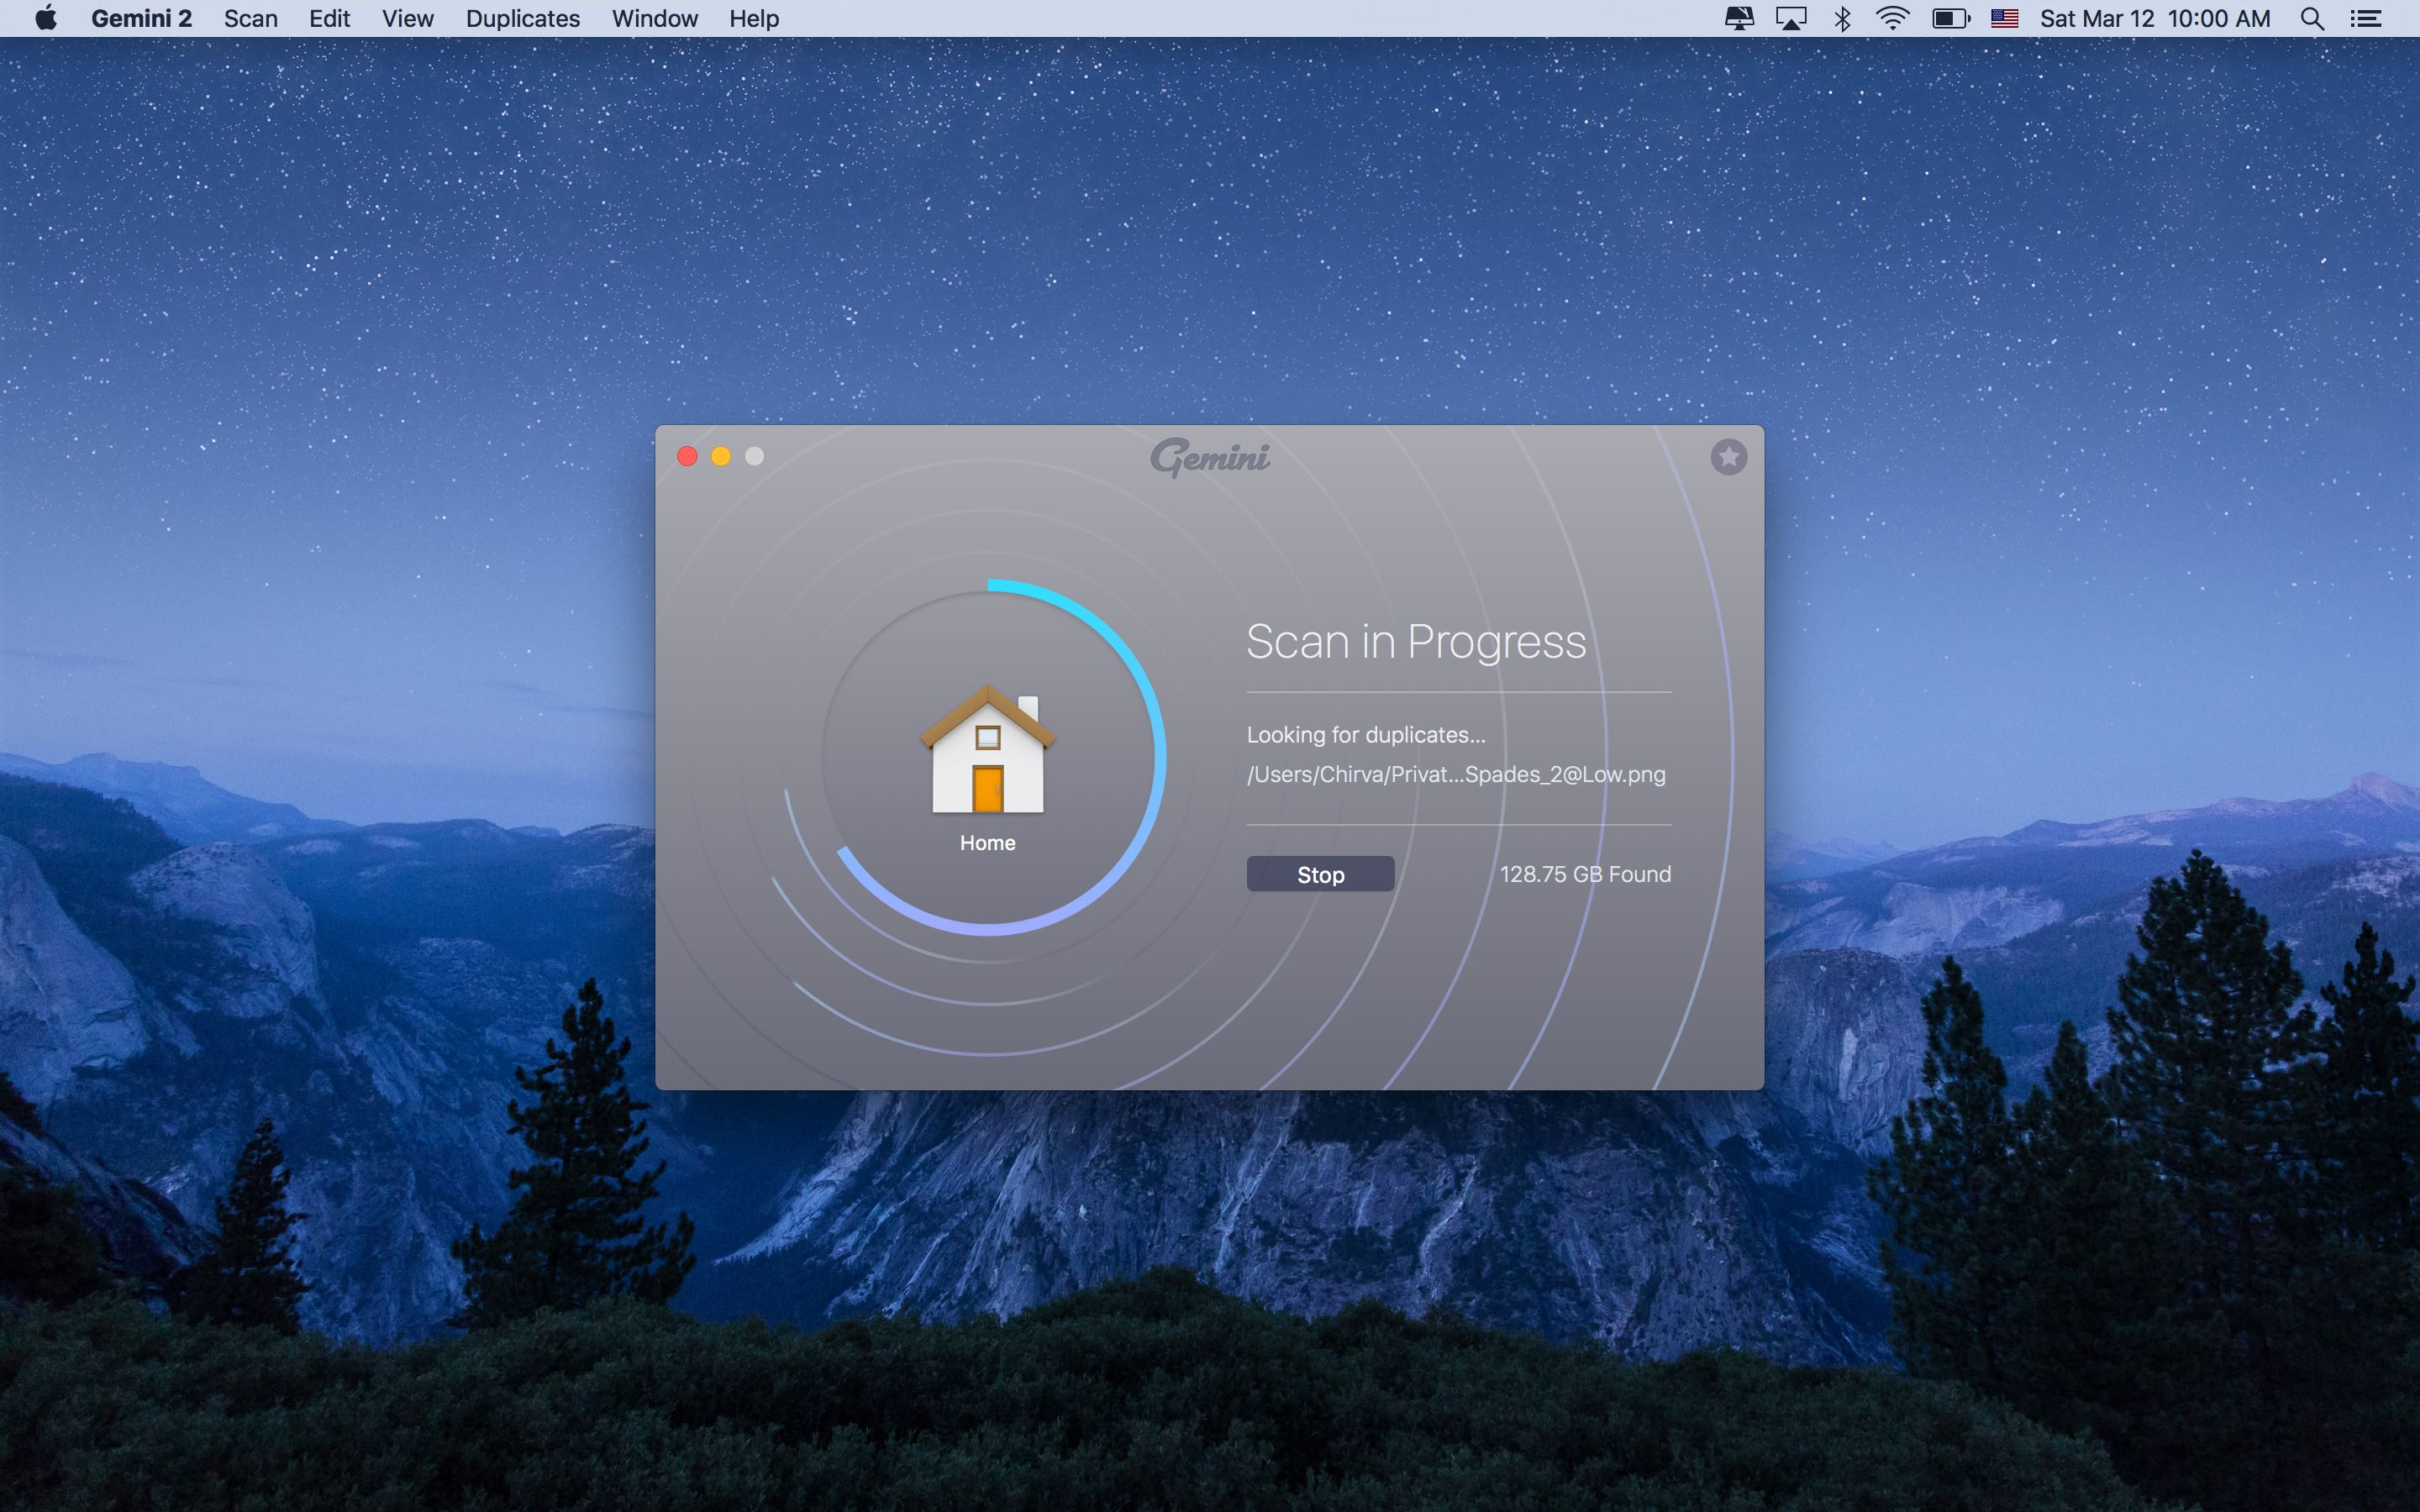 Gemini 2.0 for OS X scan in progress Mac screenshot 001